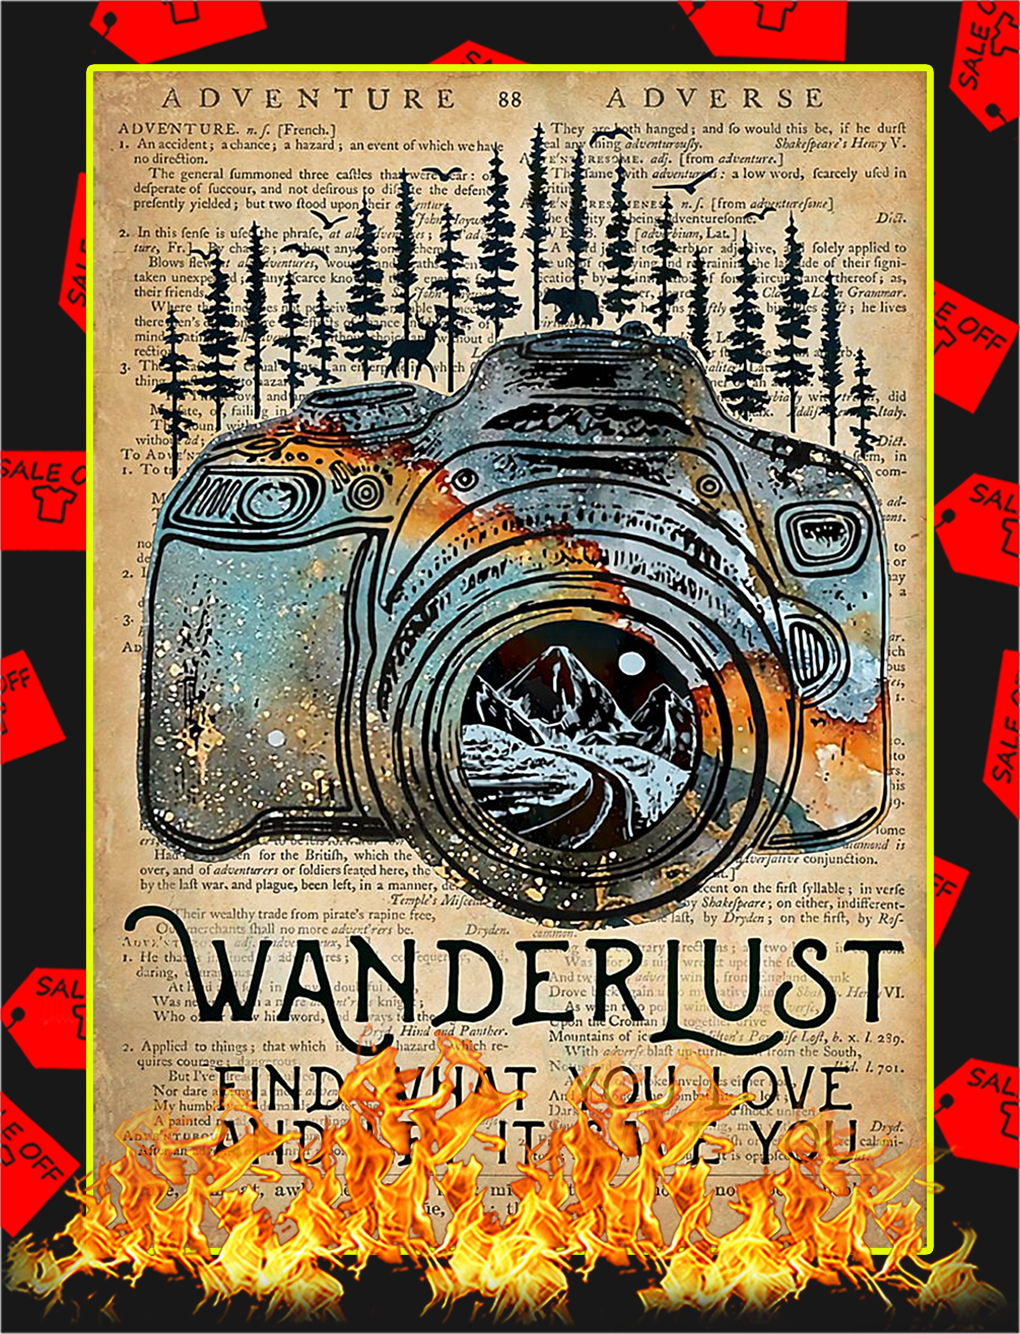 Camera Wanderlust find what you love poster - A2